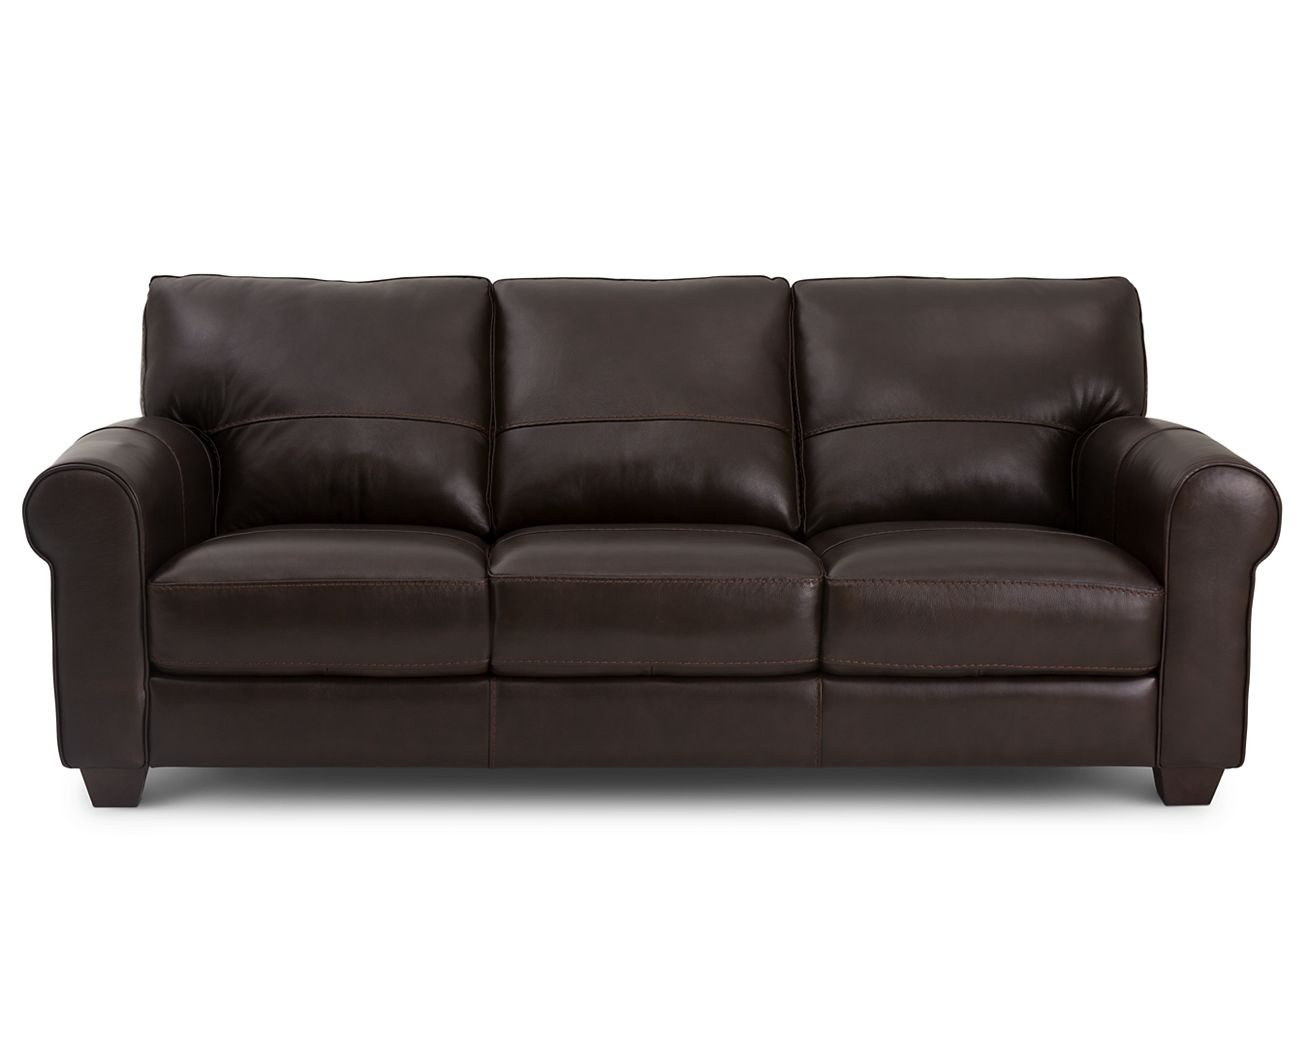 Sofa mart green bay thesofa for Furniture row